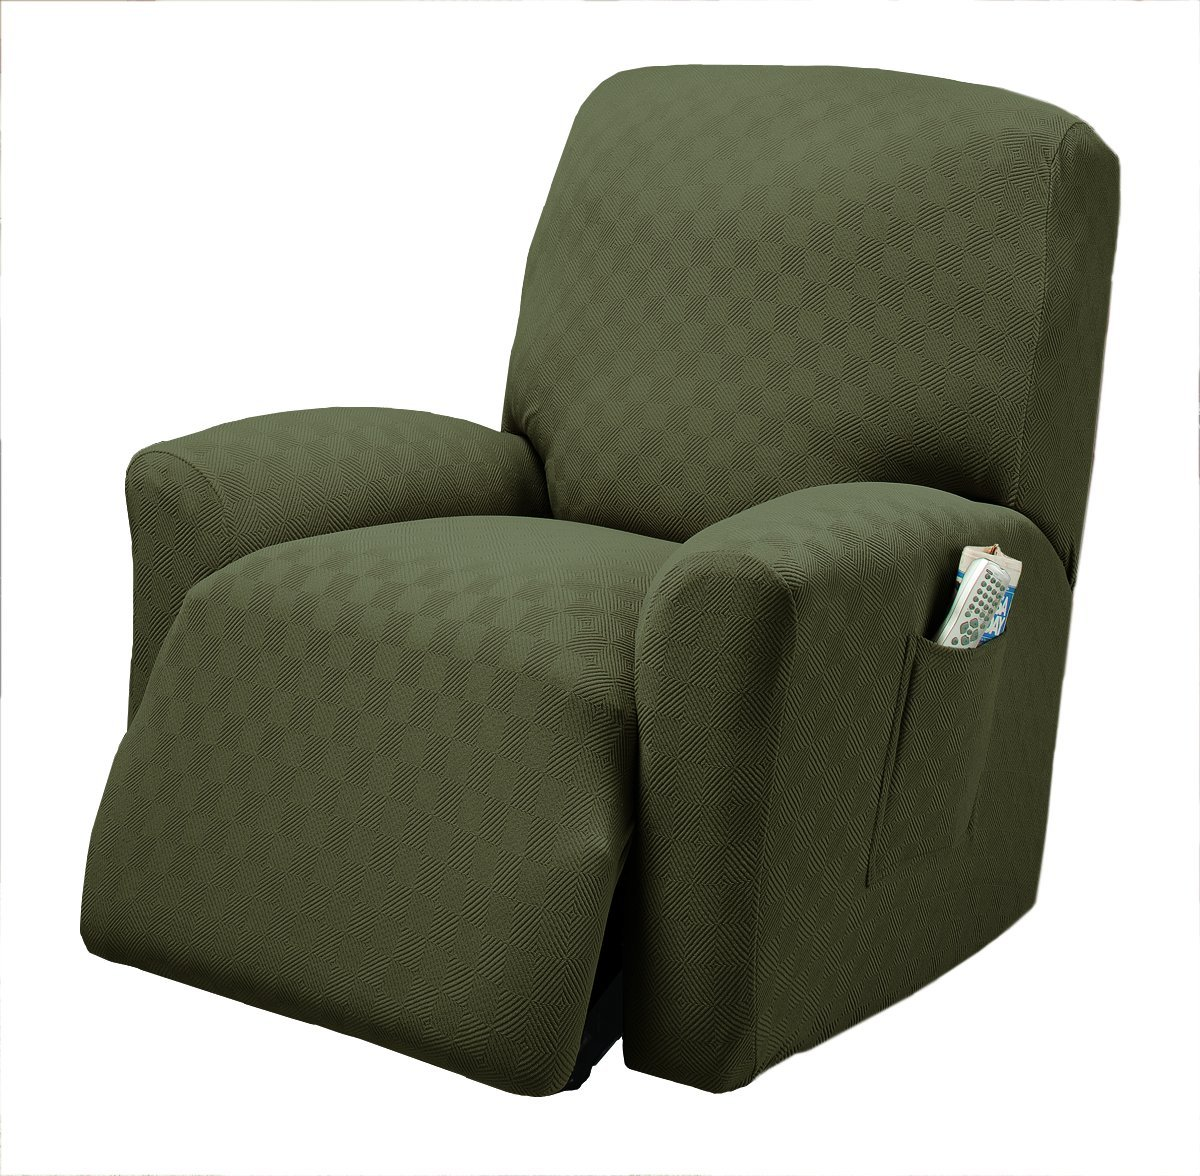 La Z Boy Recliner Covers Amp Recliner Chair Covers Sure